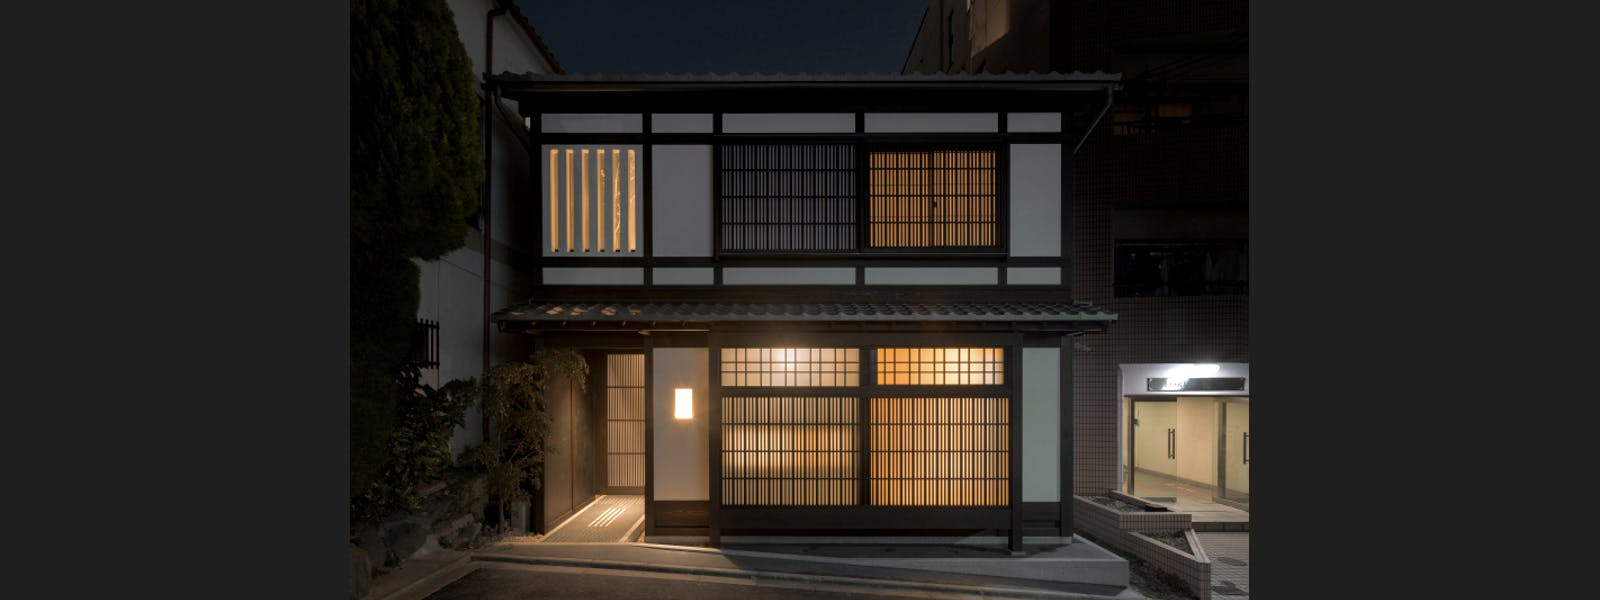 Shimaya Stays Komatsu Residences - Gion, Kyoto - Premium Serviced Residences